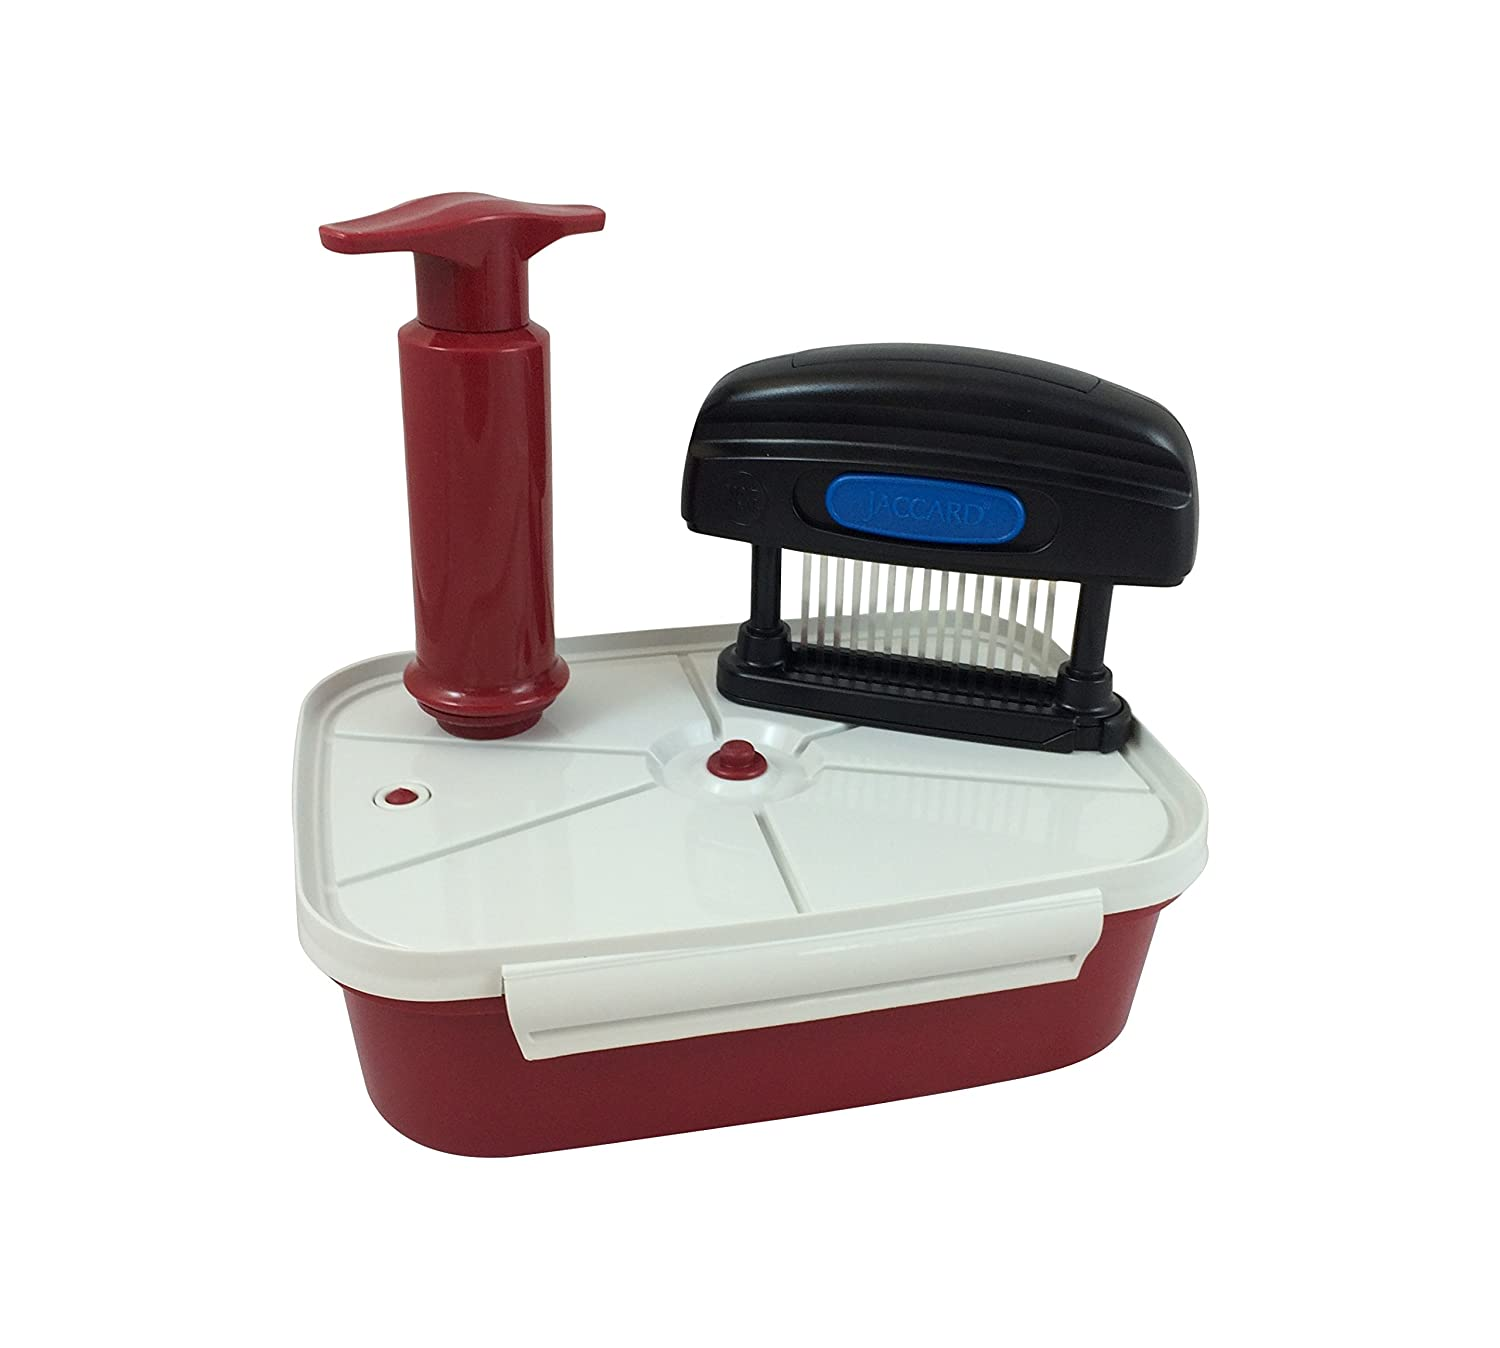 Jaccard 14411 Meat Tenderizer, Speedy Plus Instant Marinater, 2.5-Litre,Red/White/Black 201410